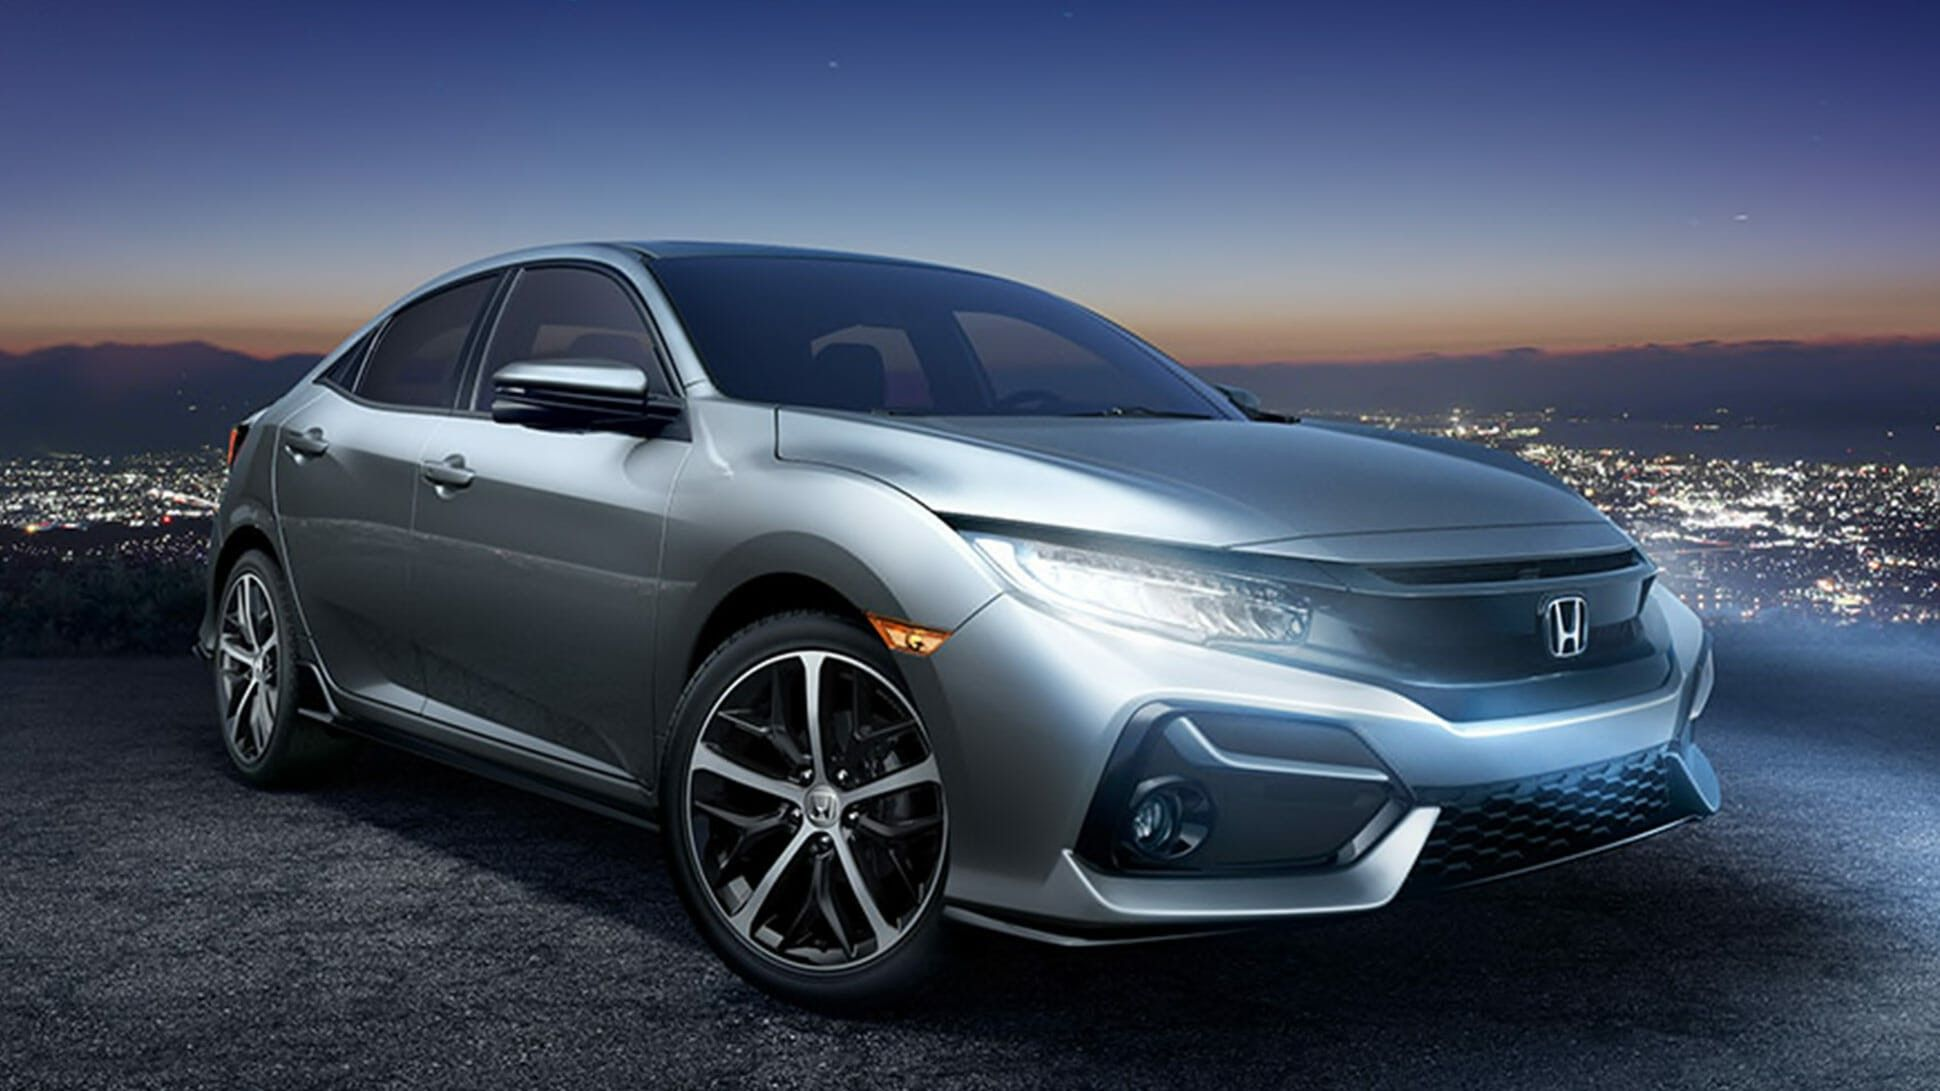 2021 honda civic review prices release date and changes